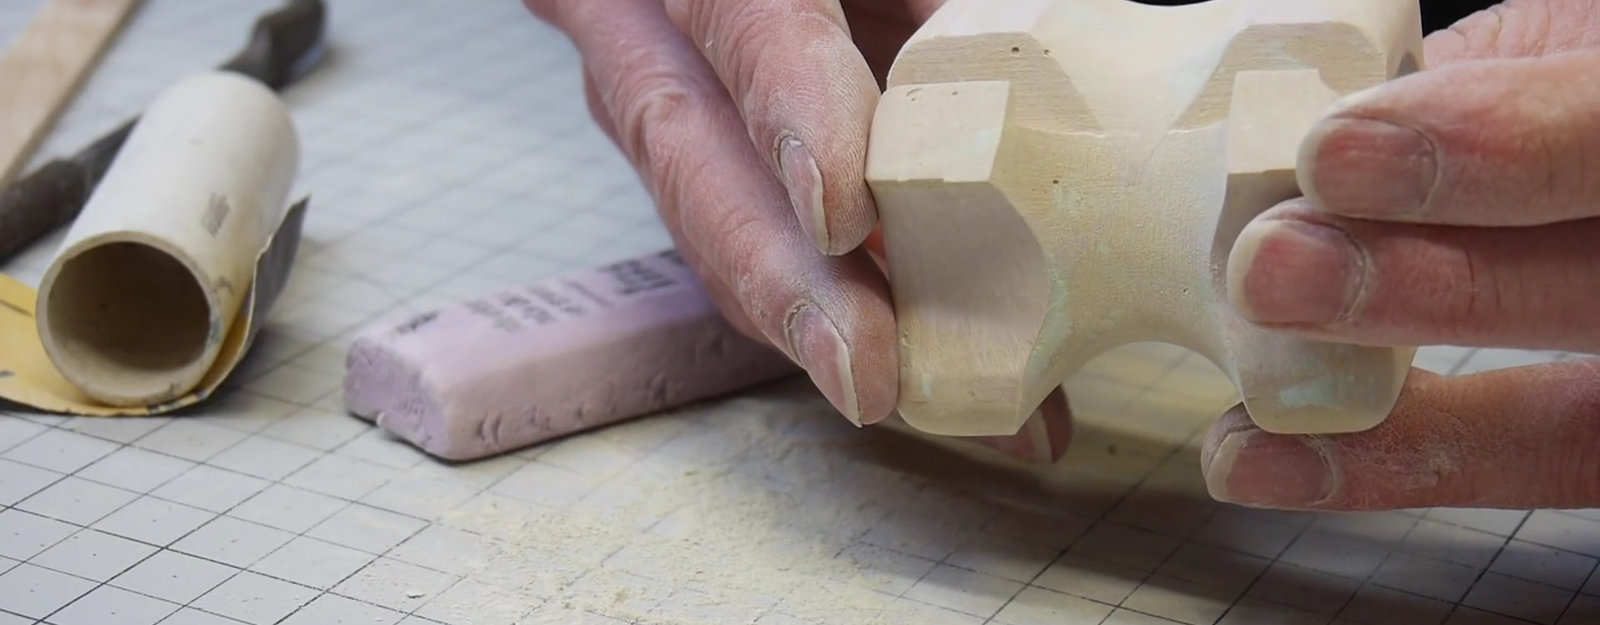 Bondo Basics for Designers and Modelmakers, Part 2 - Core77